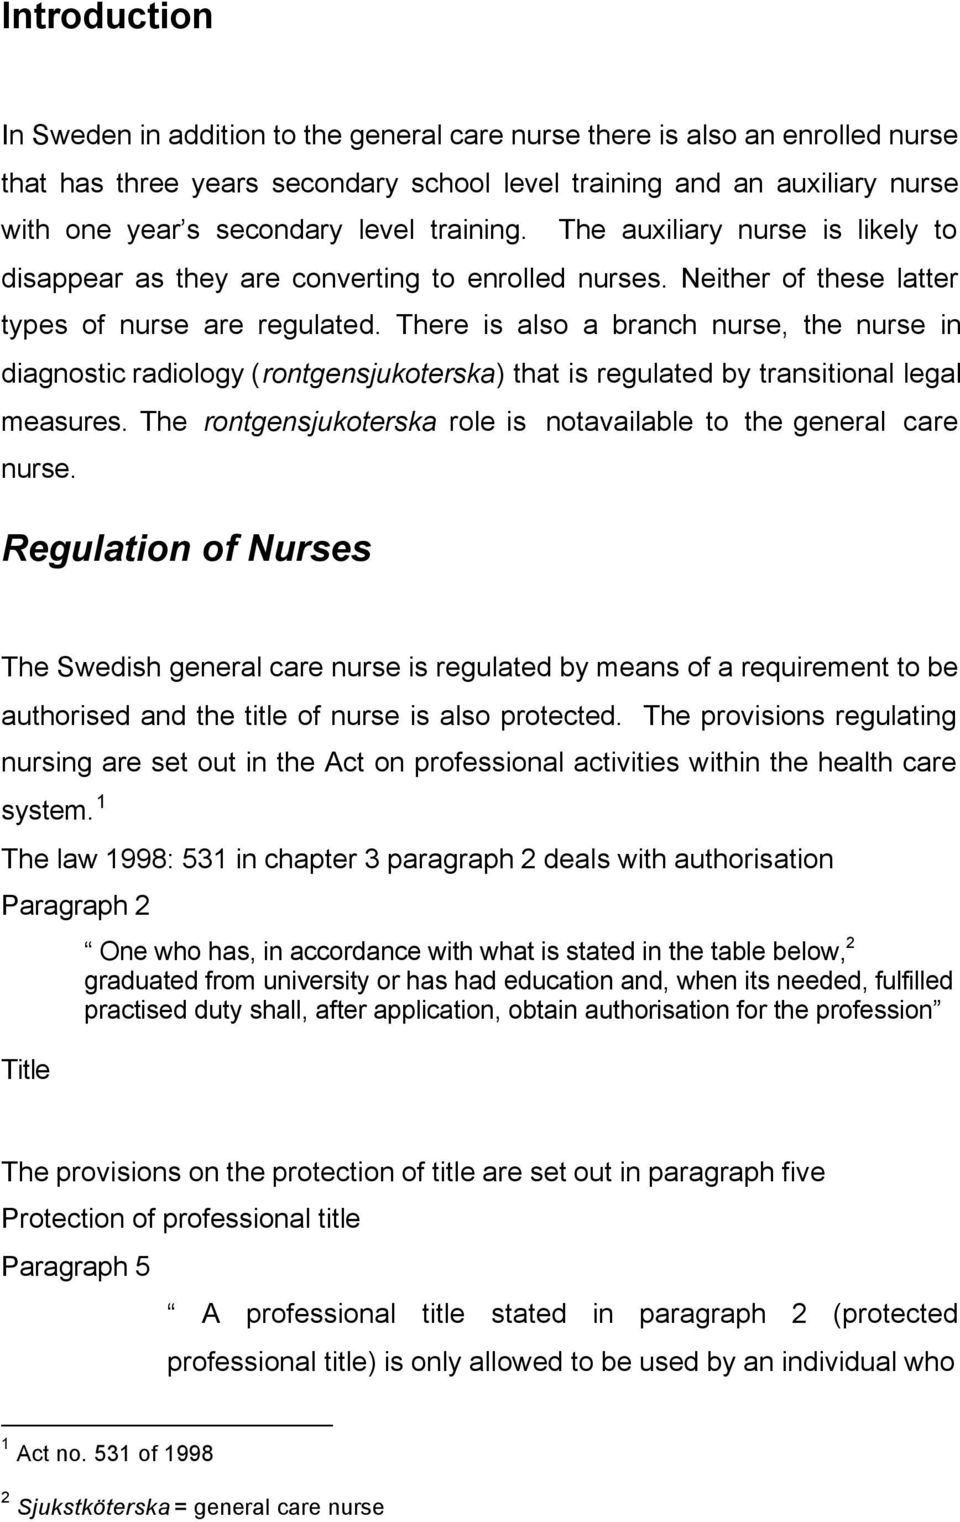 There is also a branch nurse, the nurse in diagnostic radiology (rontgensjukoterska) that is regulated by transitional legal measures.